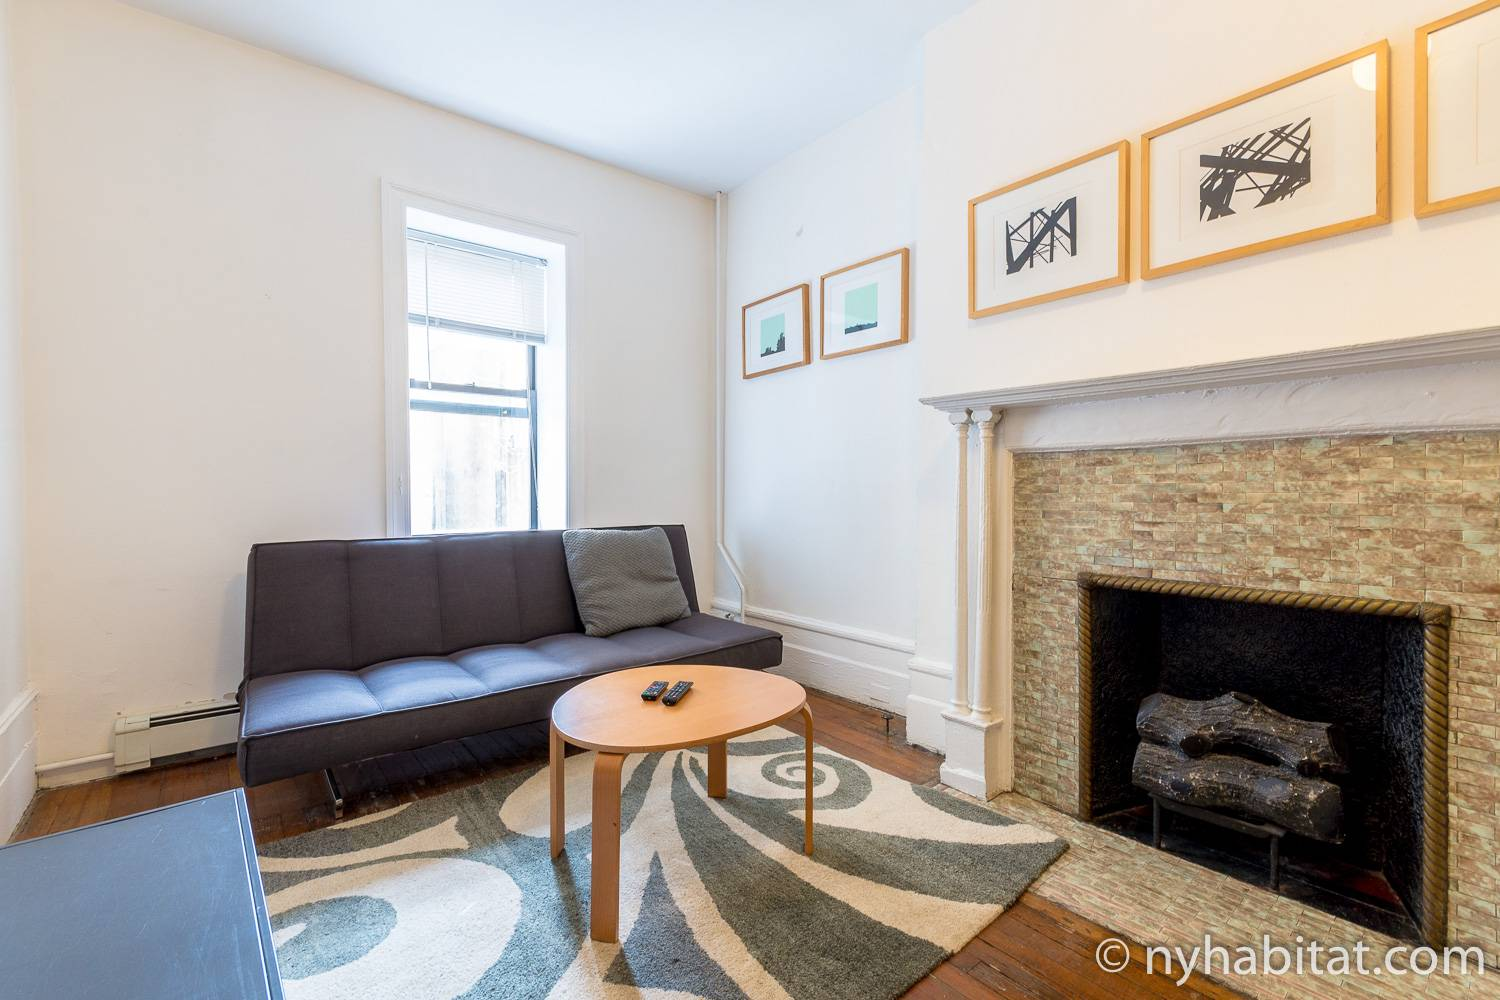 Image of living room of furnished rental NY-927 on Upper West Side with decorative fireplace